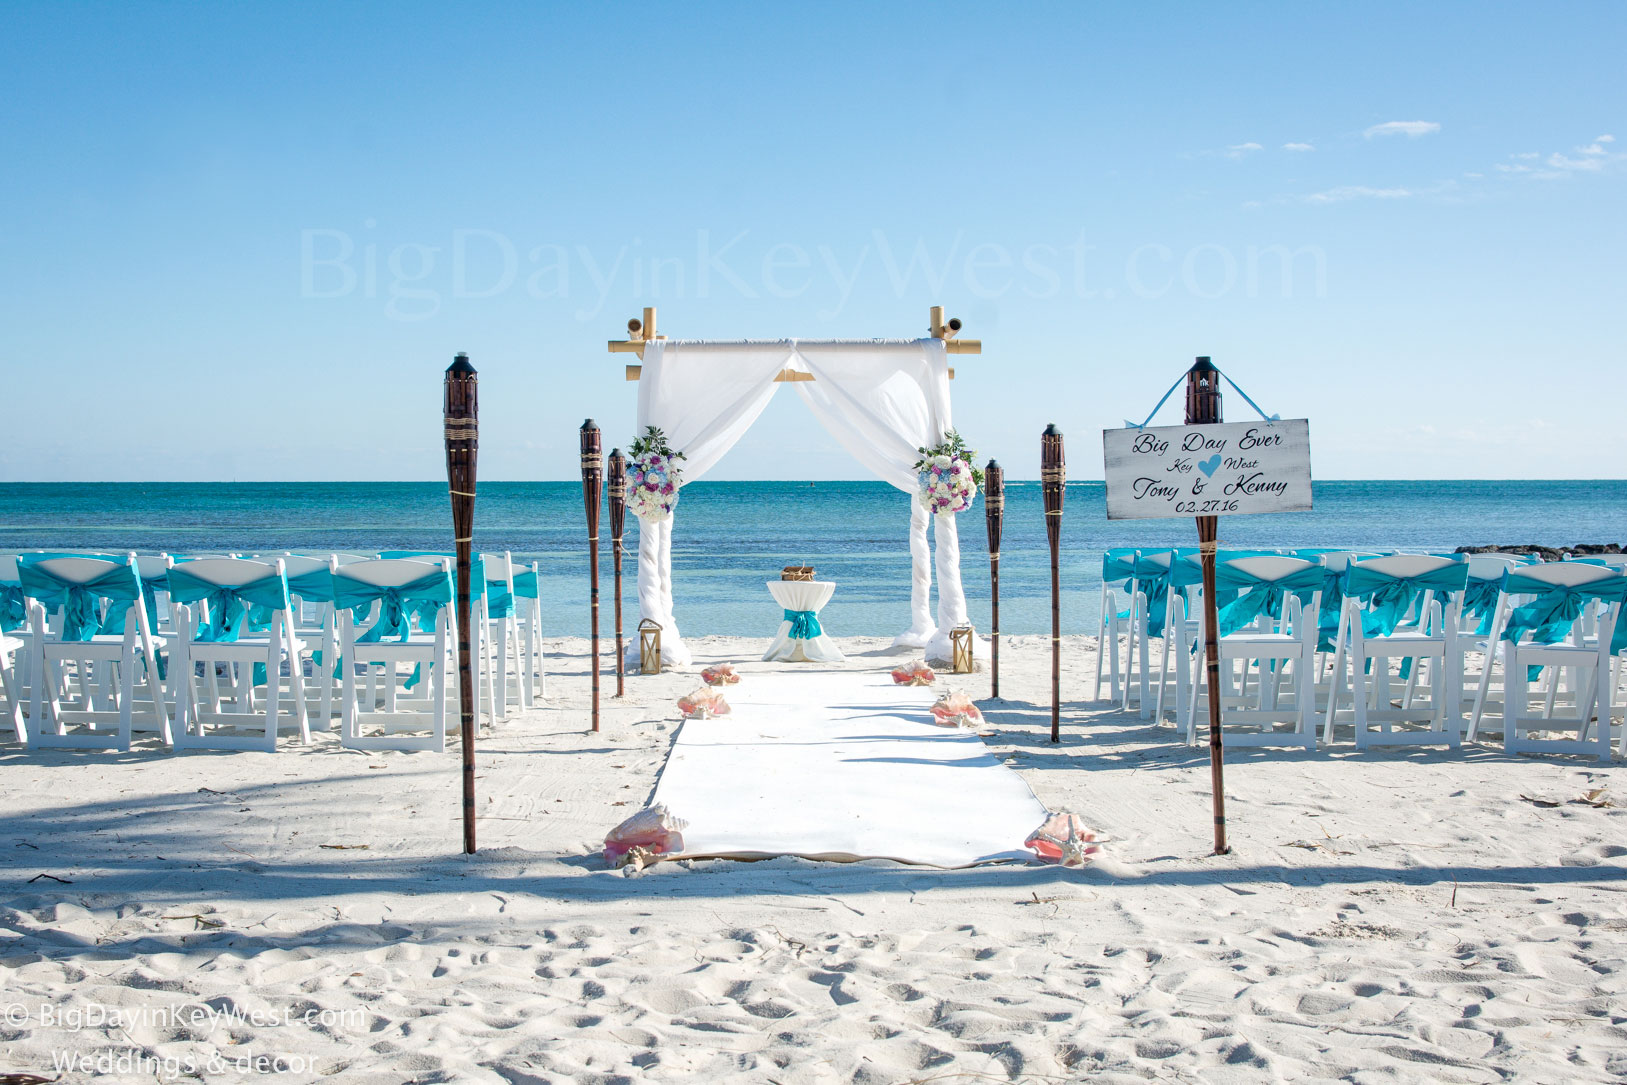 Key West Smathers beach wedding